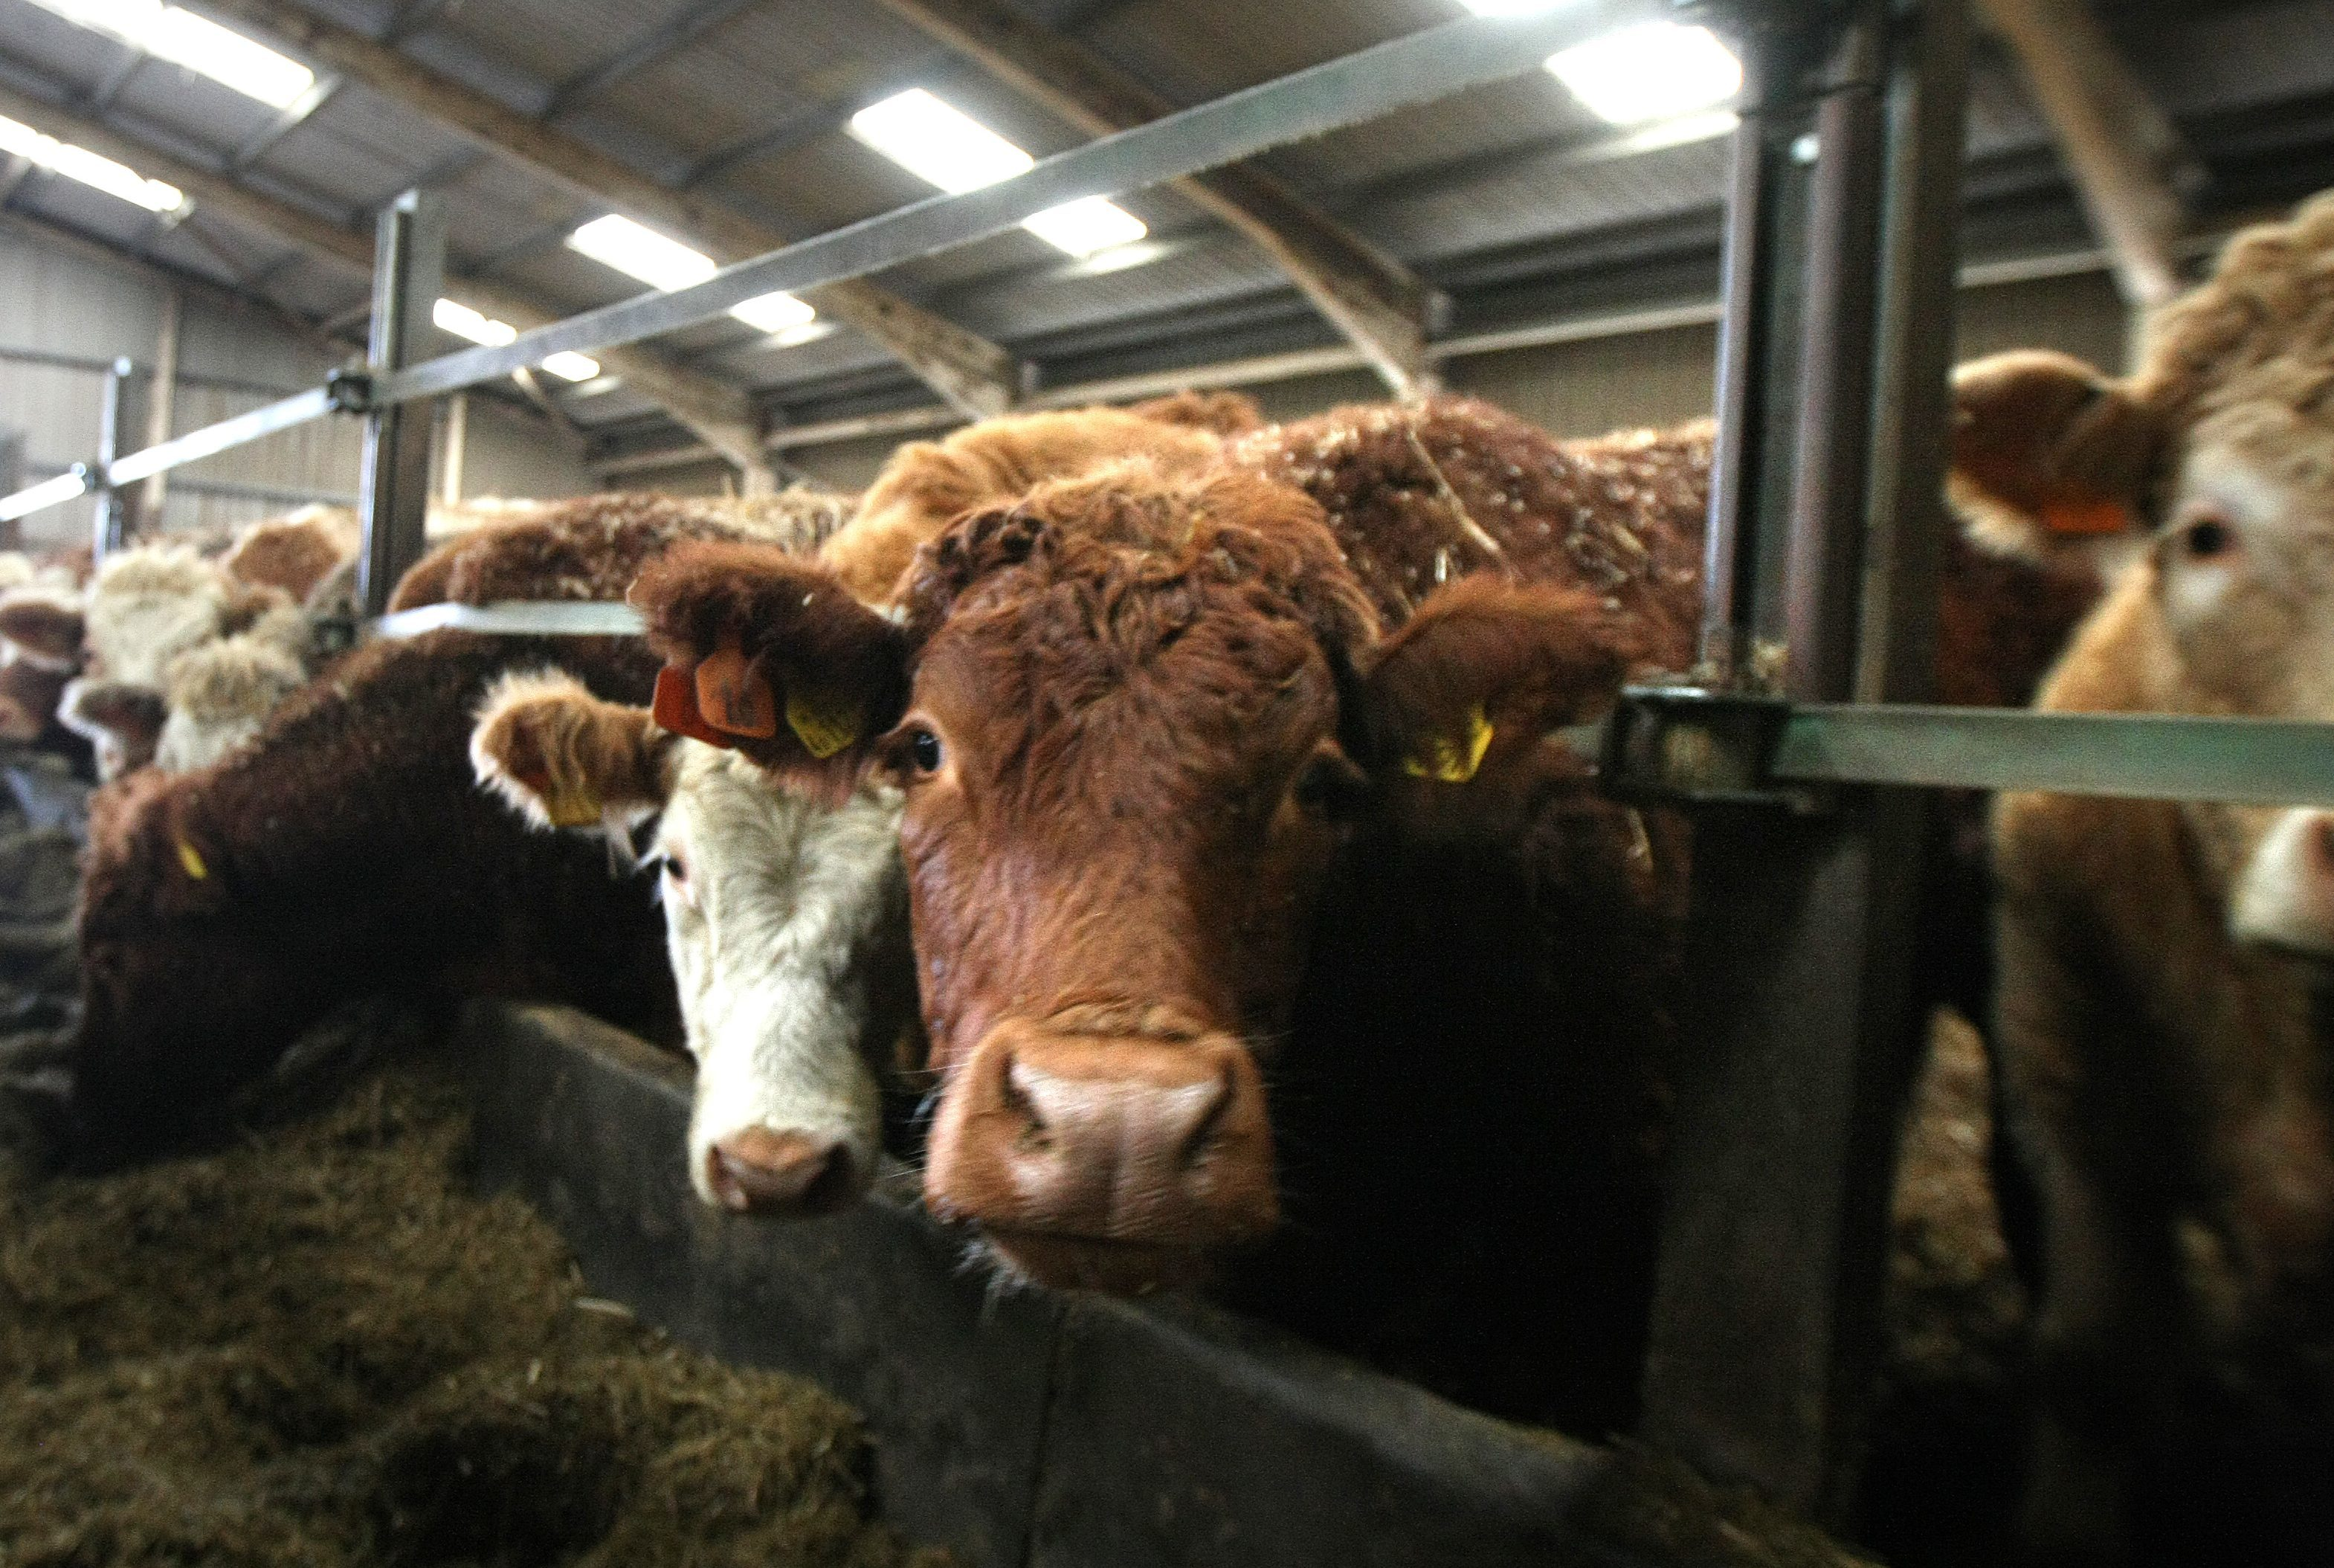 Non-compliant herds risk infecting other herds